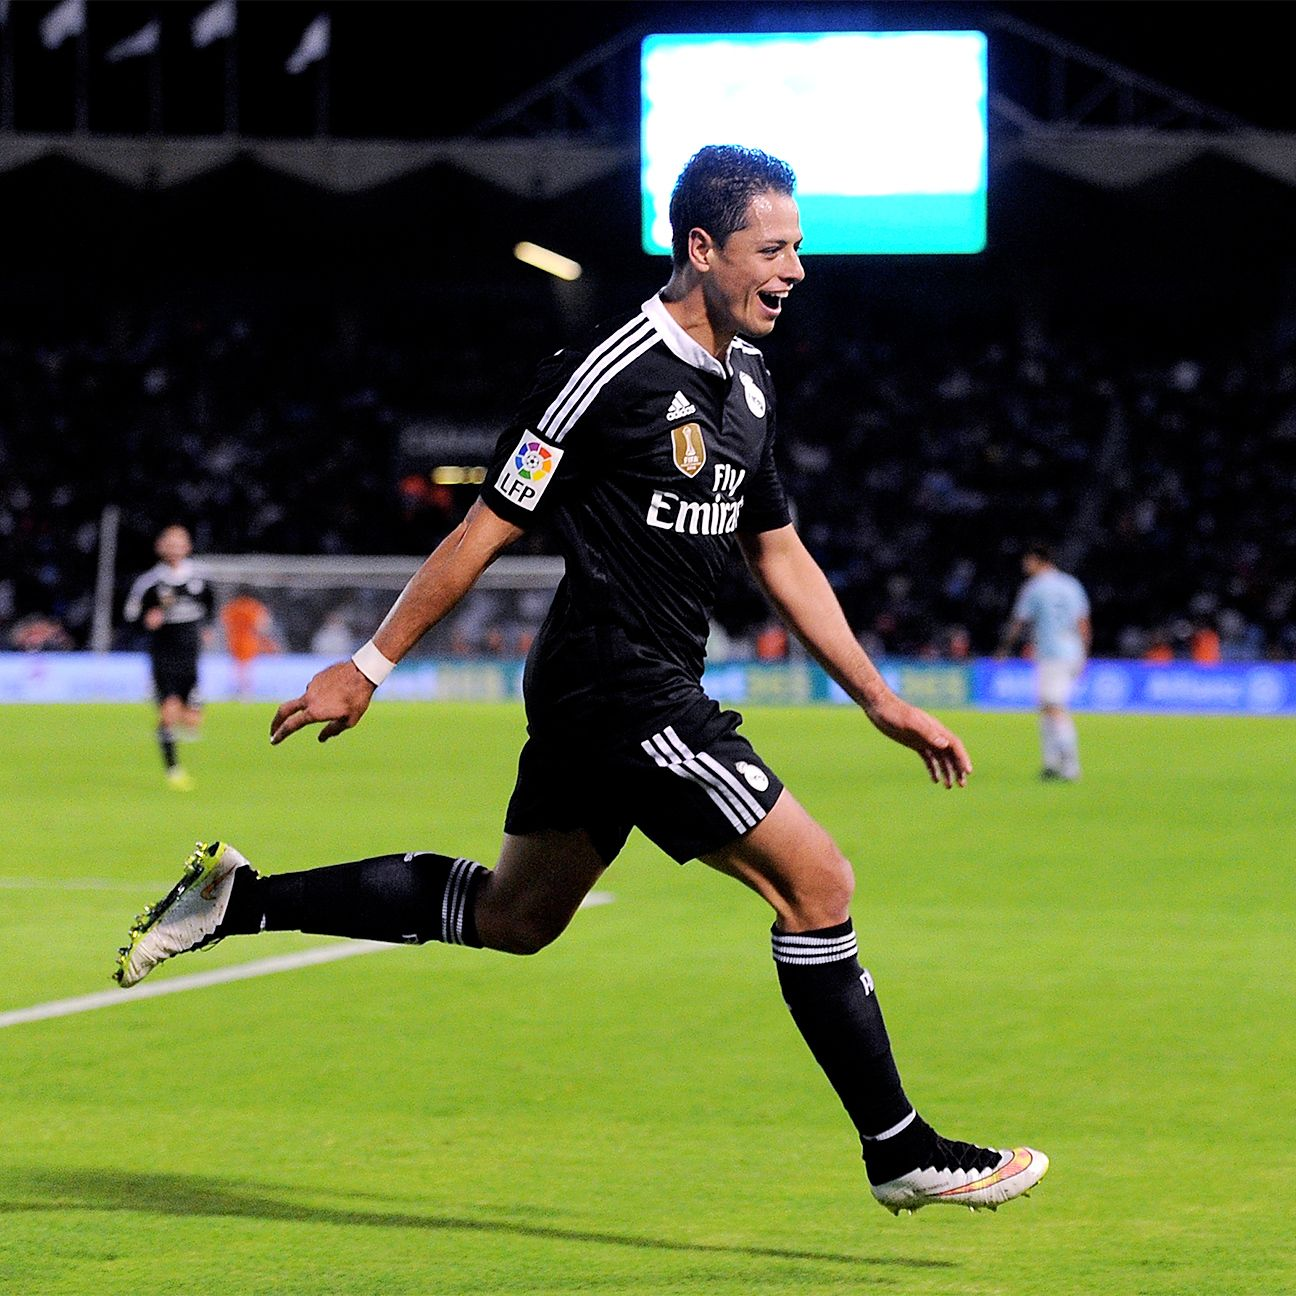 Chicharito Hernandez has four goals in his last four matches for Real Madrid.